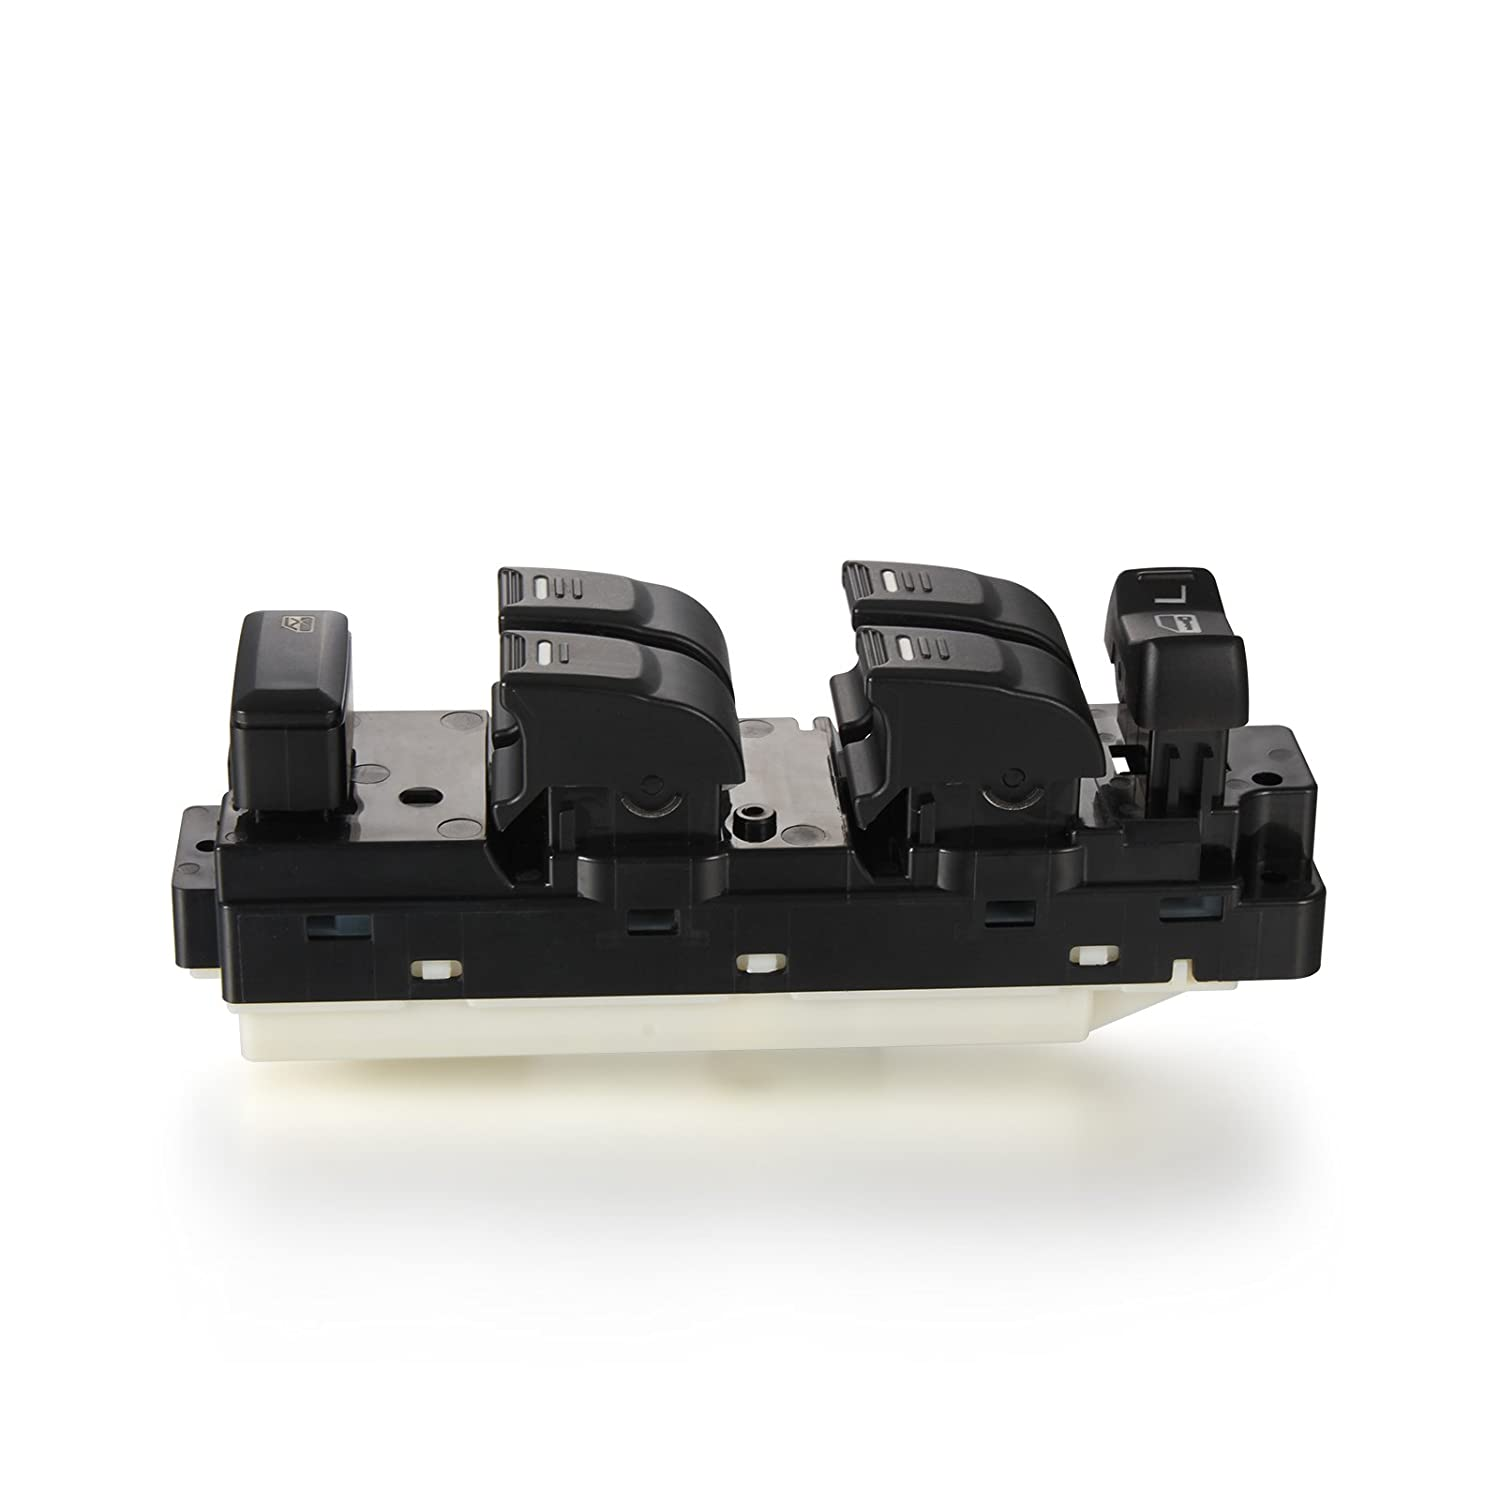 Dromedary Power Master Window Switch Control for GMC Canyon Chevy Chevrolet Colorado Hummer 25779767 Dromedary Autoparts